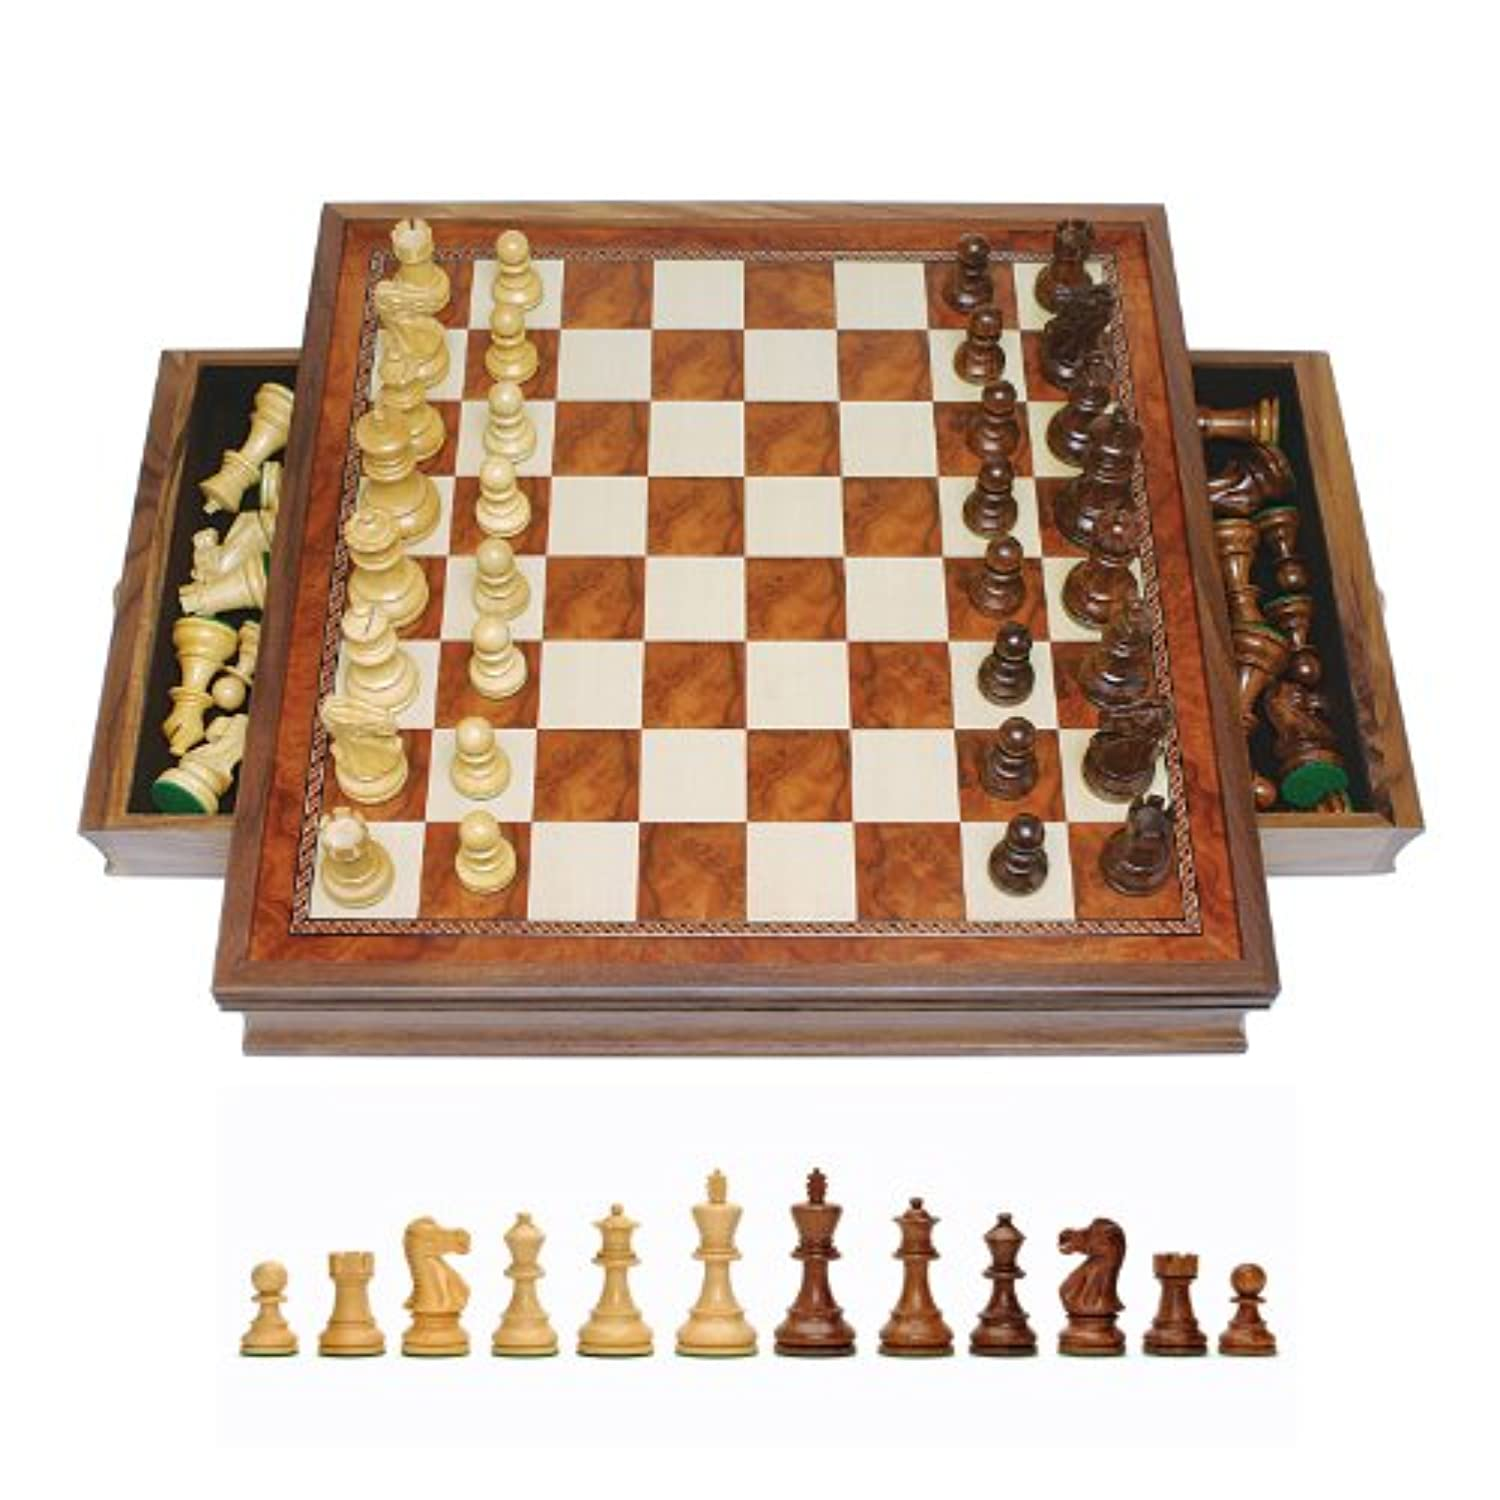 WE Games Grand English Style Chess Set with Storage Drawers - Pieces are Tournament Sized and Hand Carved with Camphor